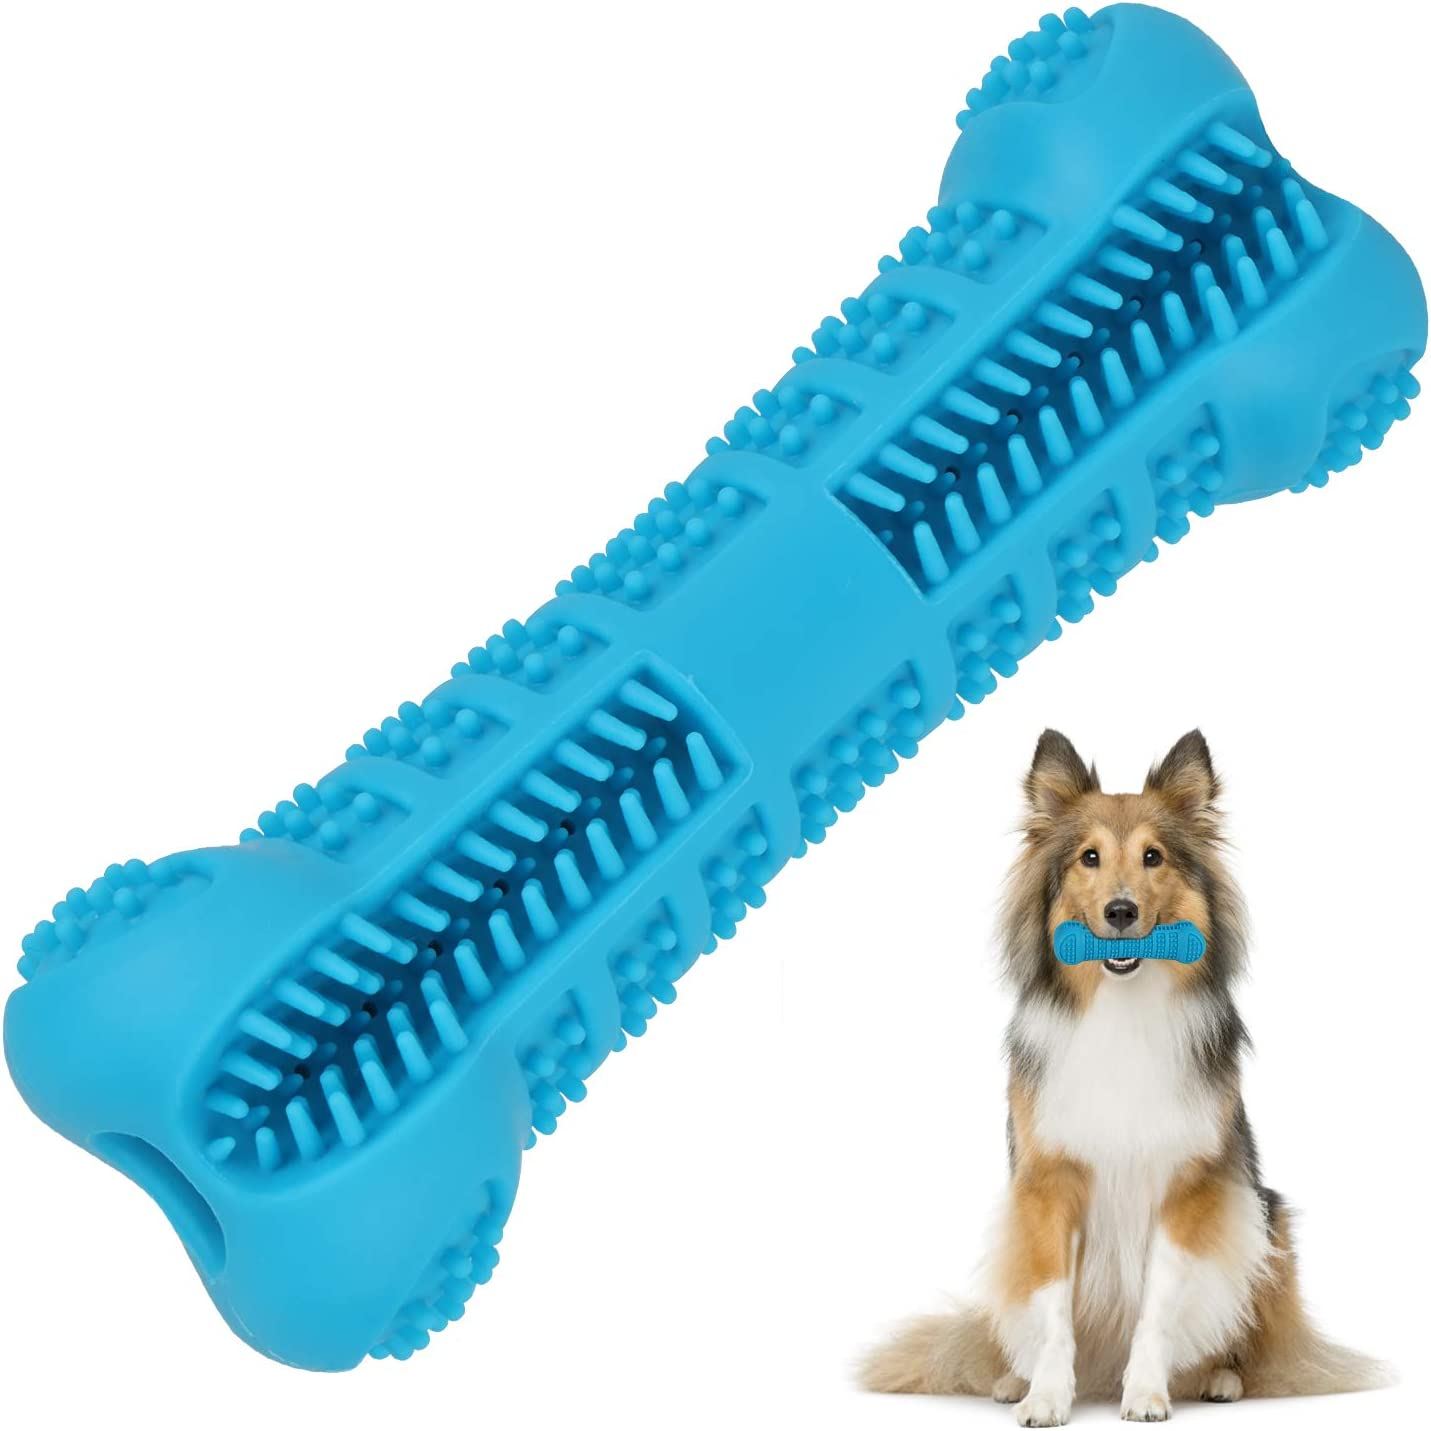 Ufanore Dog Chew Toys for Non-Aggressive Chewers with Non-Toxic & Food-Grade Silicone Material, More Attractive Bone-Shaped Dog Toothbrush Toys for Dental Care & Training for Most Dogs